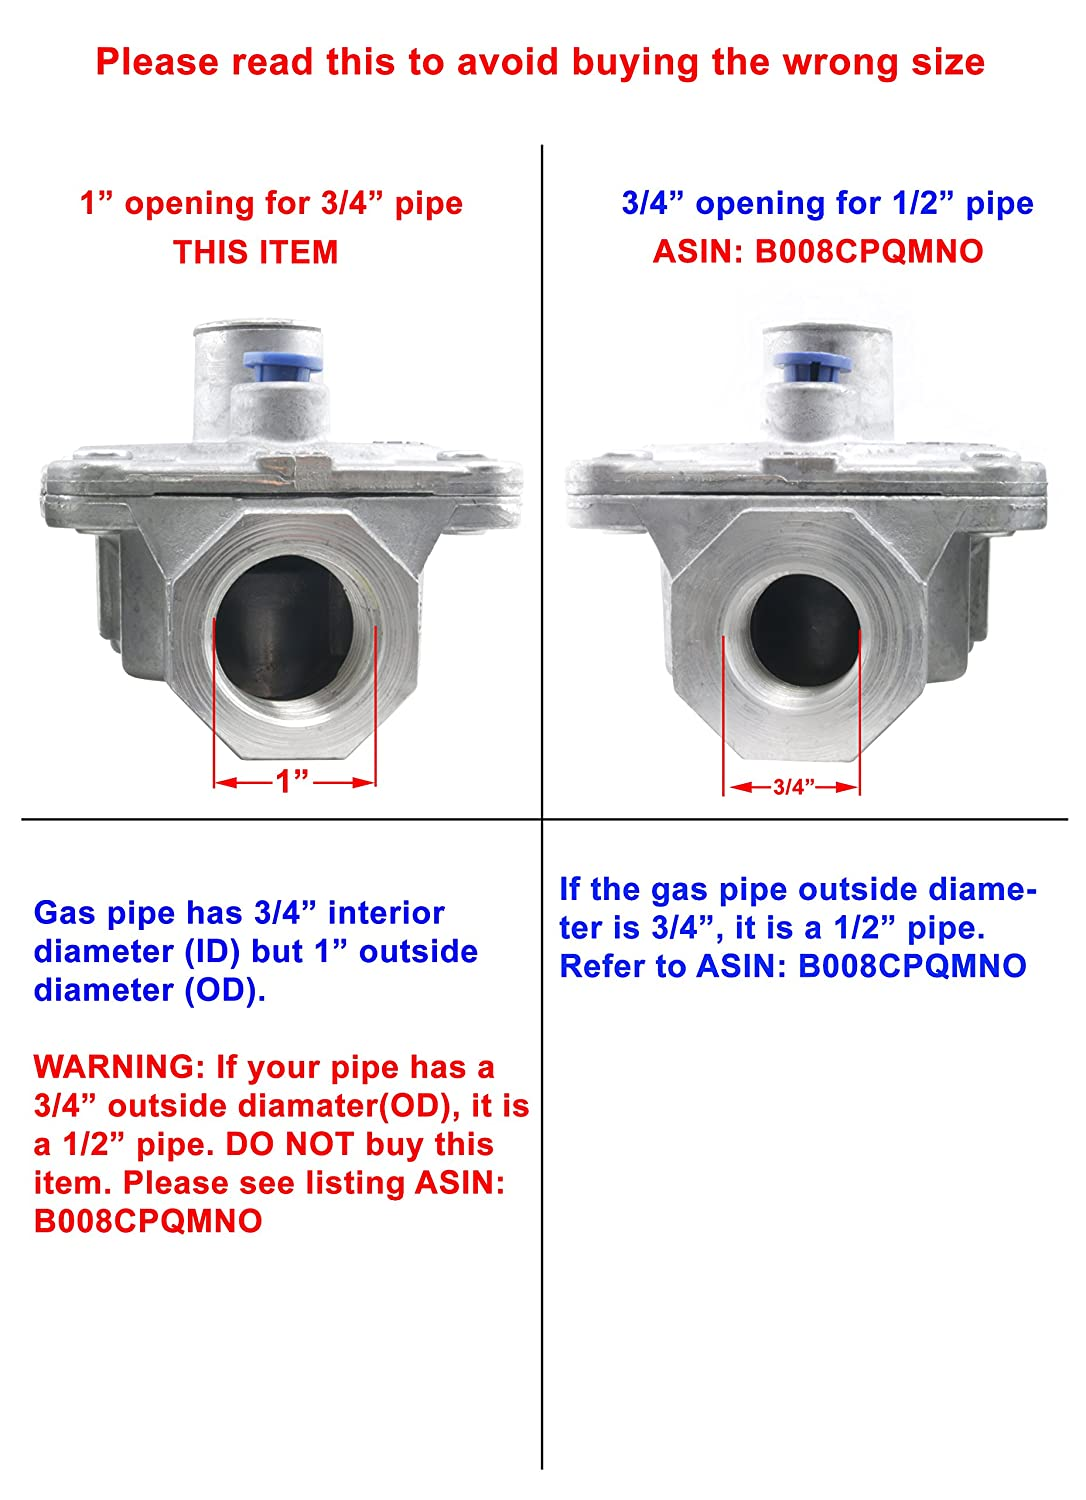 Amazon.com Maxitrol Pressure Regulator for Natural Gas 3/4  In and 3/4  Out FPT Gas Pipe1/2 PSIG 3 -6  WC. 52-1011 Industrial u0026 Scientific  sc 1 st  Amazon.com & Amazon.com: Maxitrol Pressure Regulator for Natural Gas 3/4